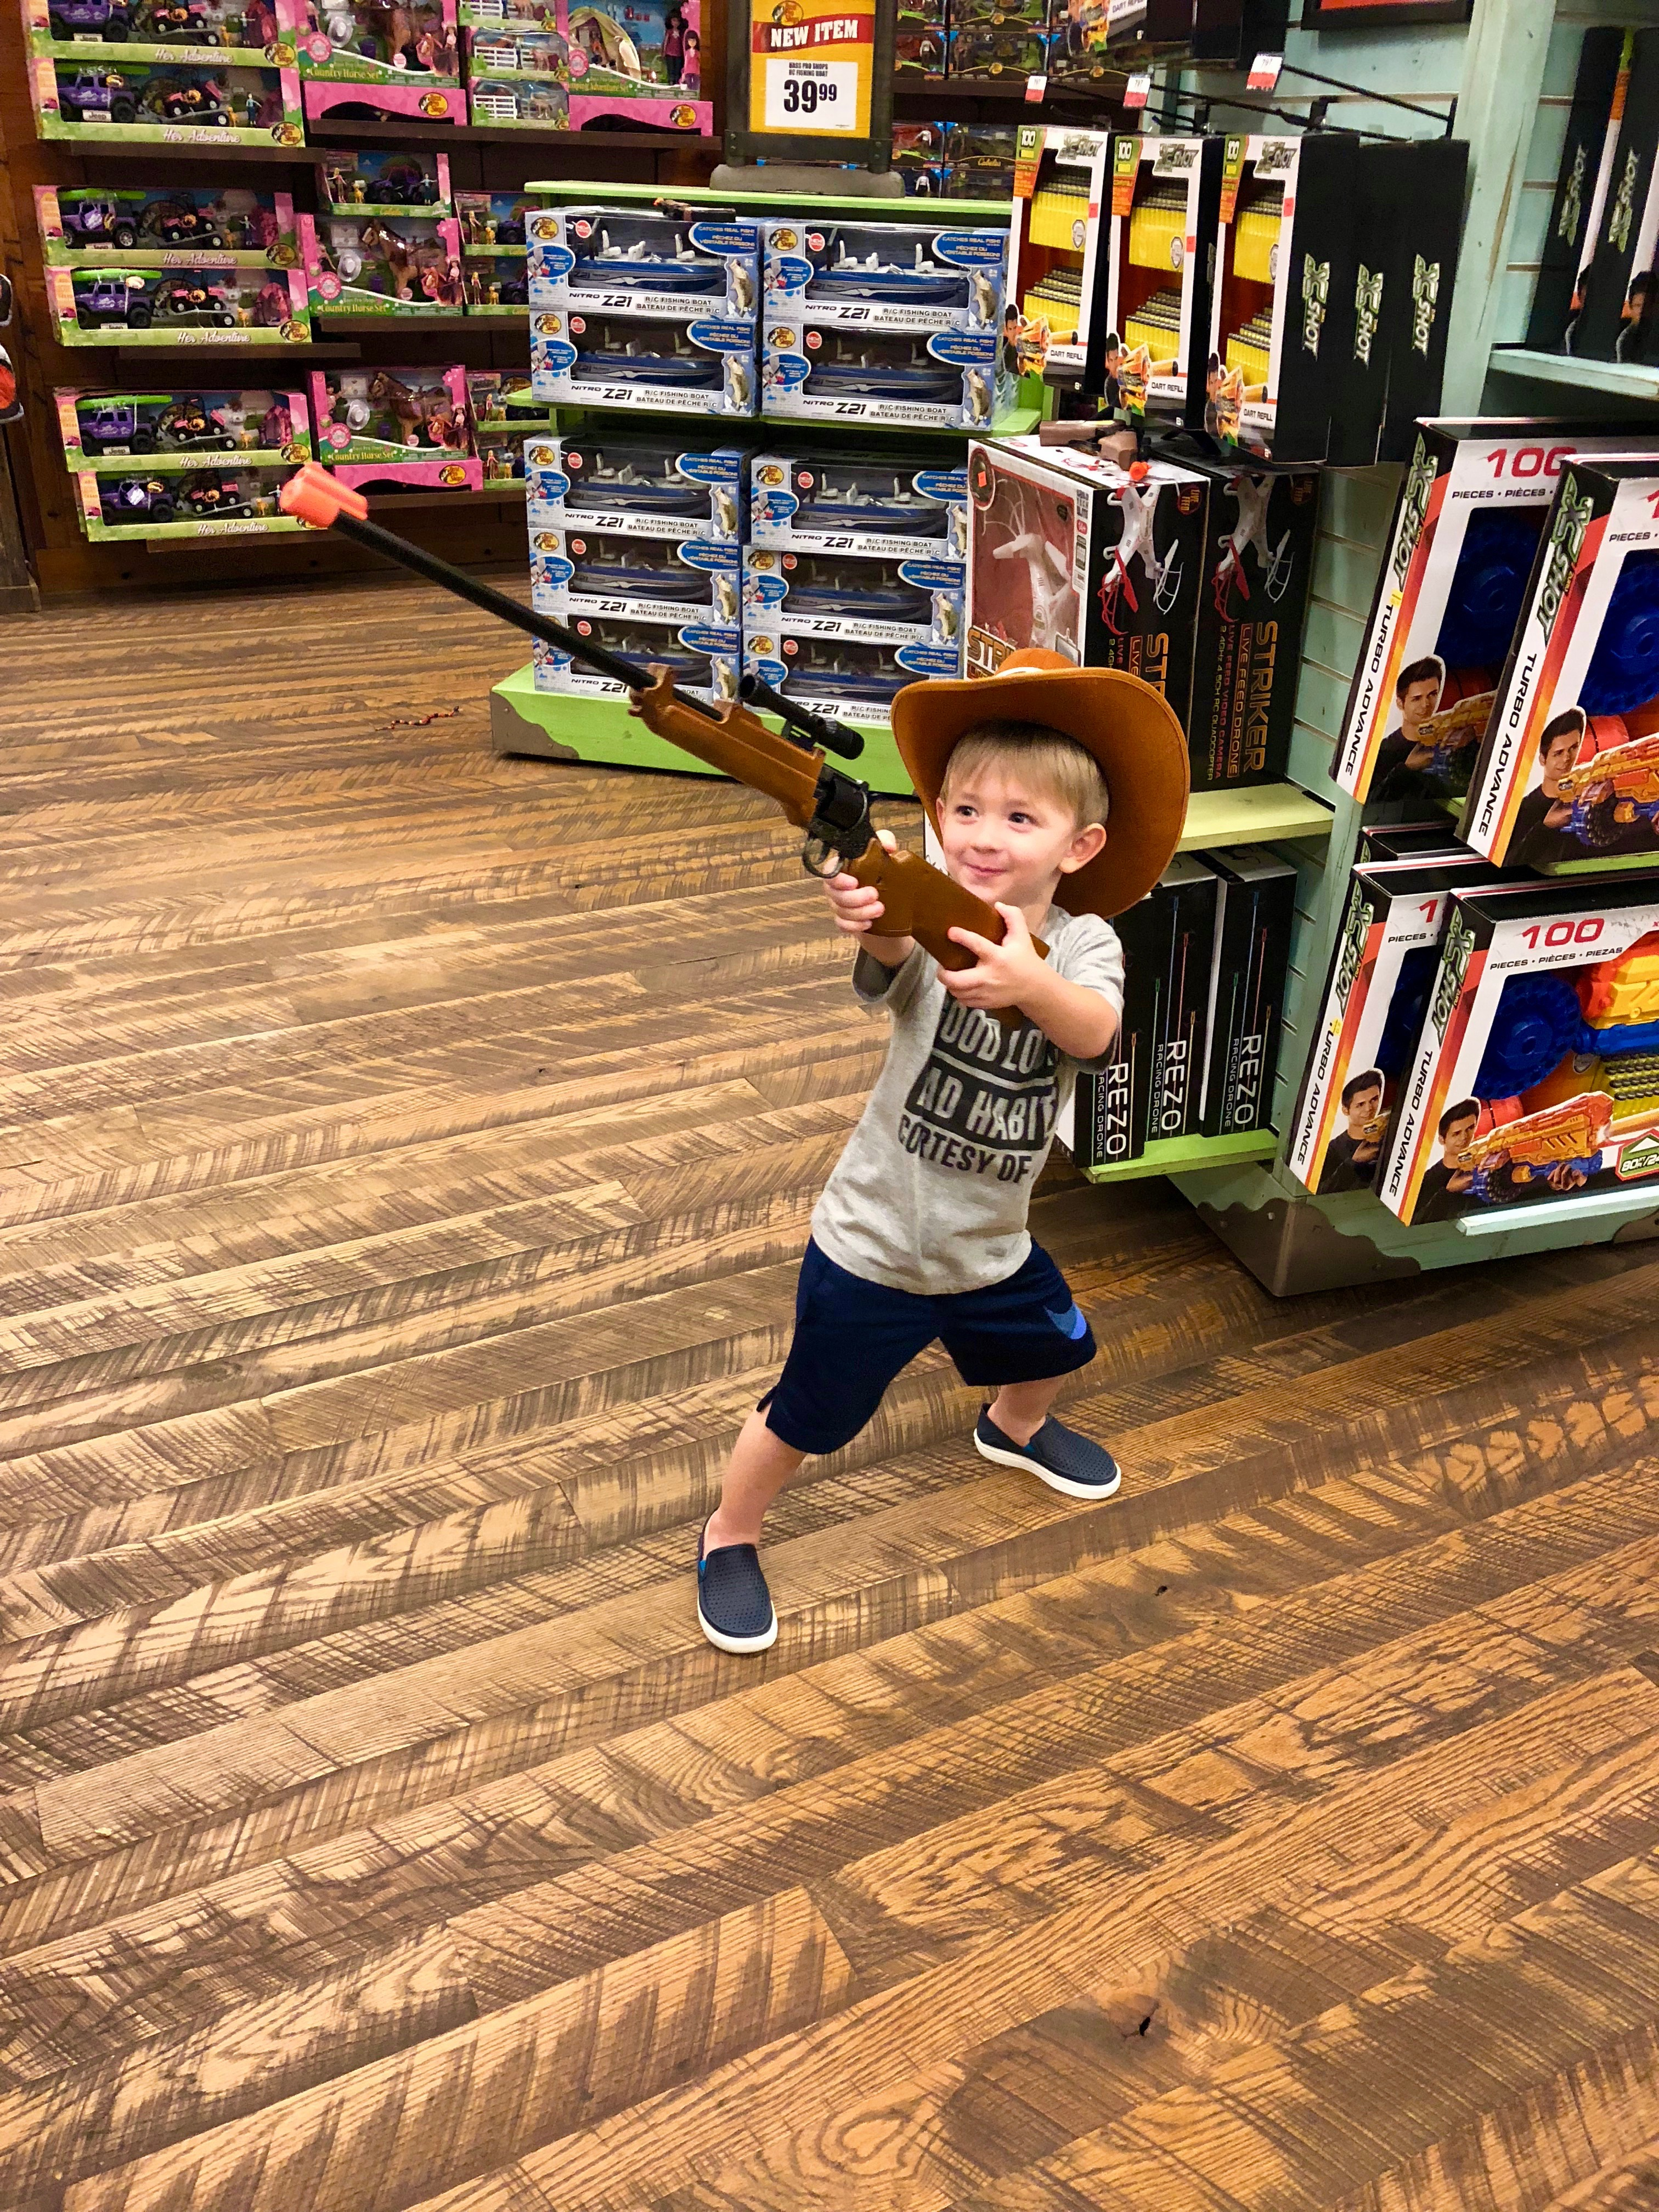 Watch out, cowboys! The Sheriff is in town.